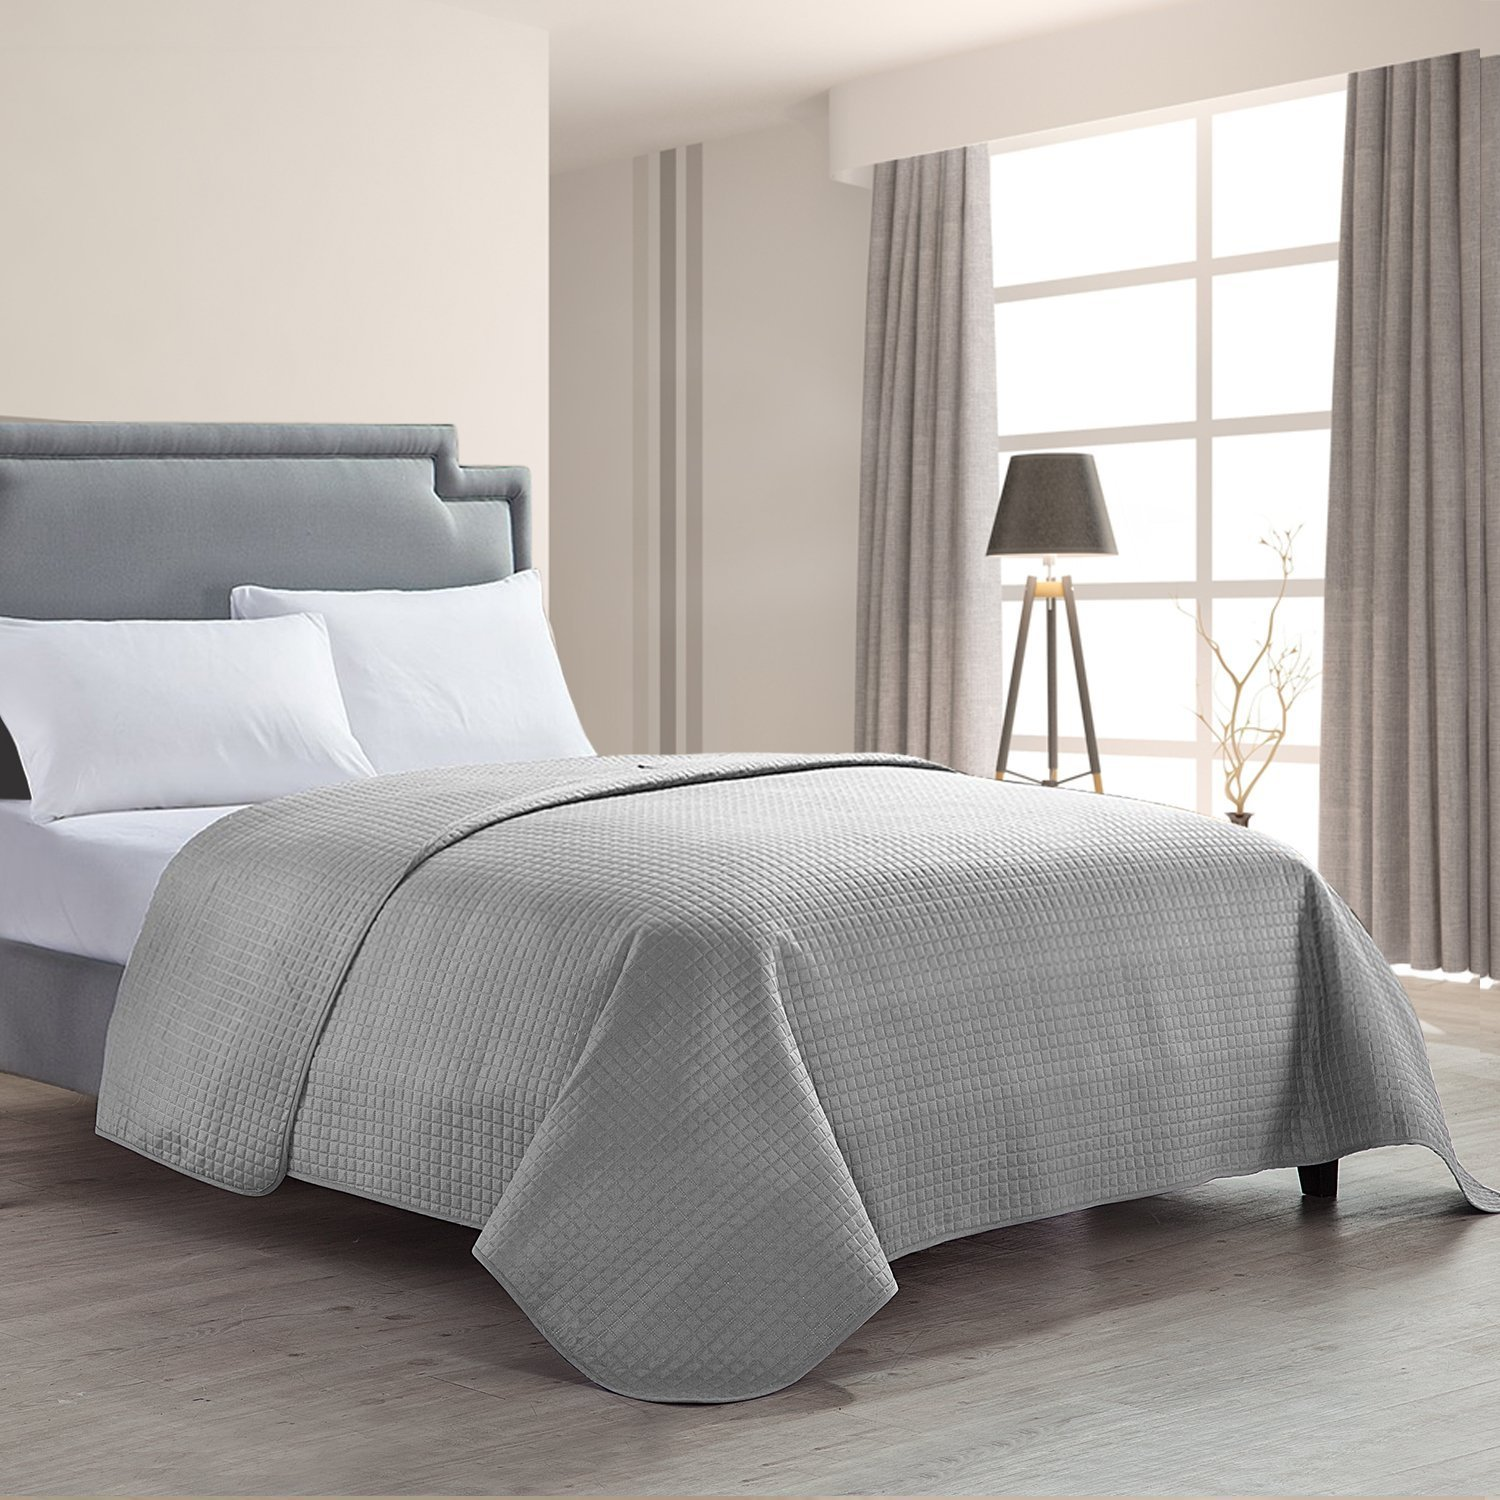 HollyHOME Luxury Checkered Super Soft Solid Single Pinsonic Bed Quilt Bedspread Bed Cover, Grey, King